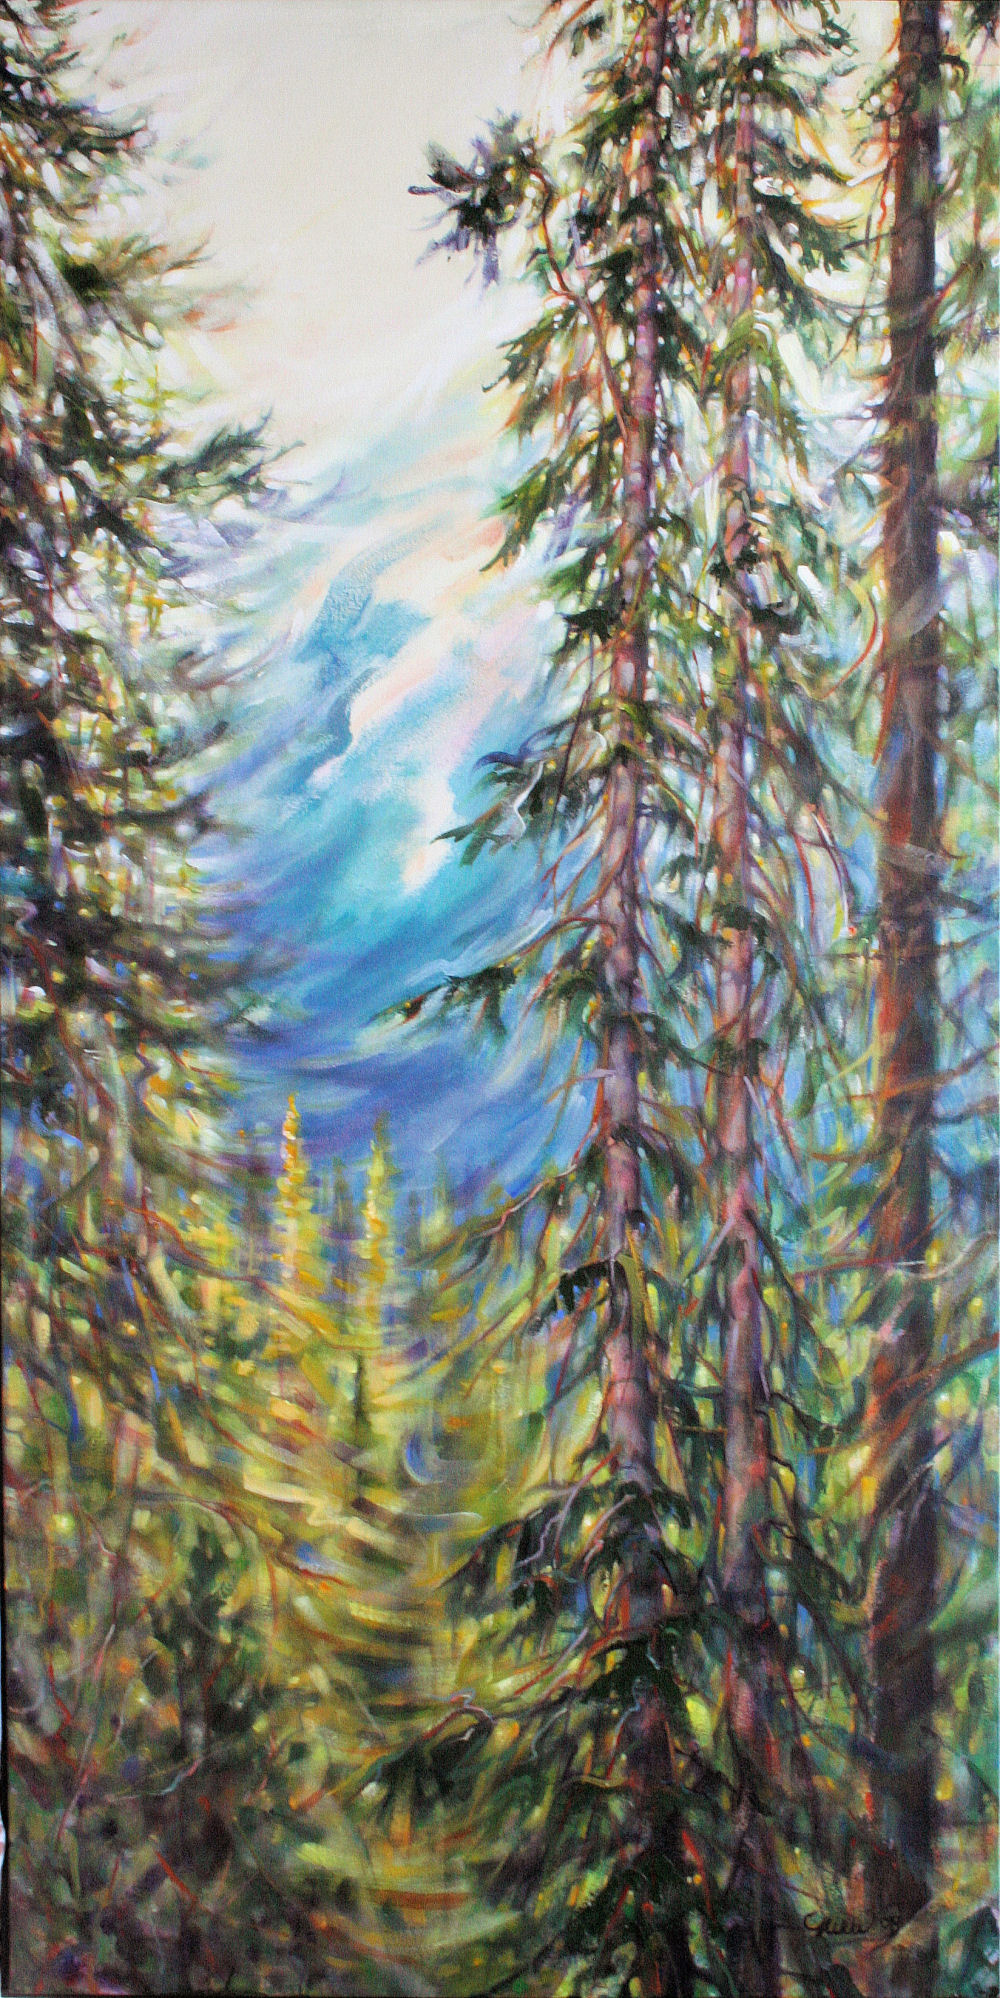 Rocky Mountain Vista, 48H x 24W x 2W inches acrylics on canvas, narrow frame. Special order